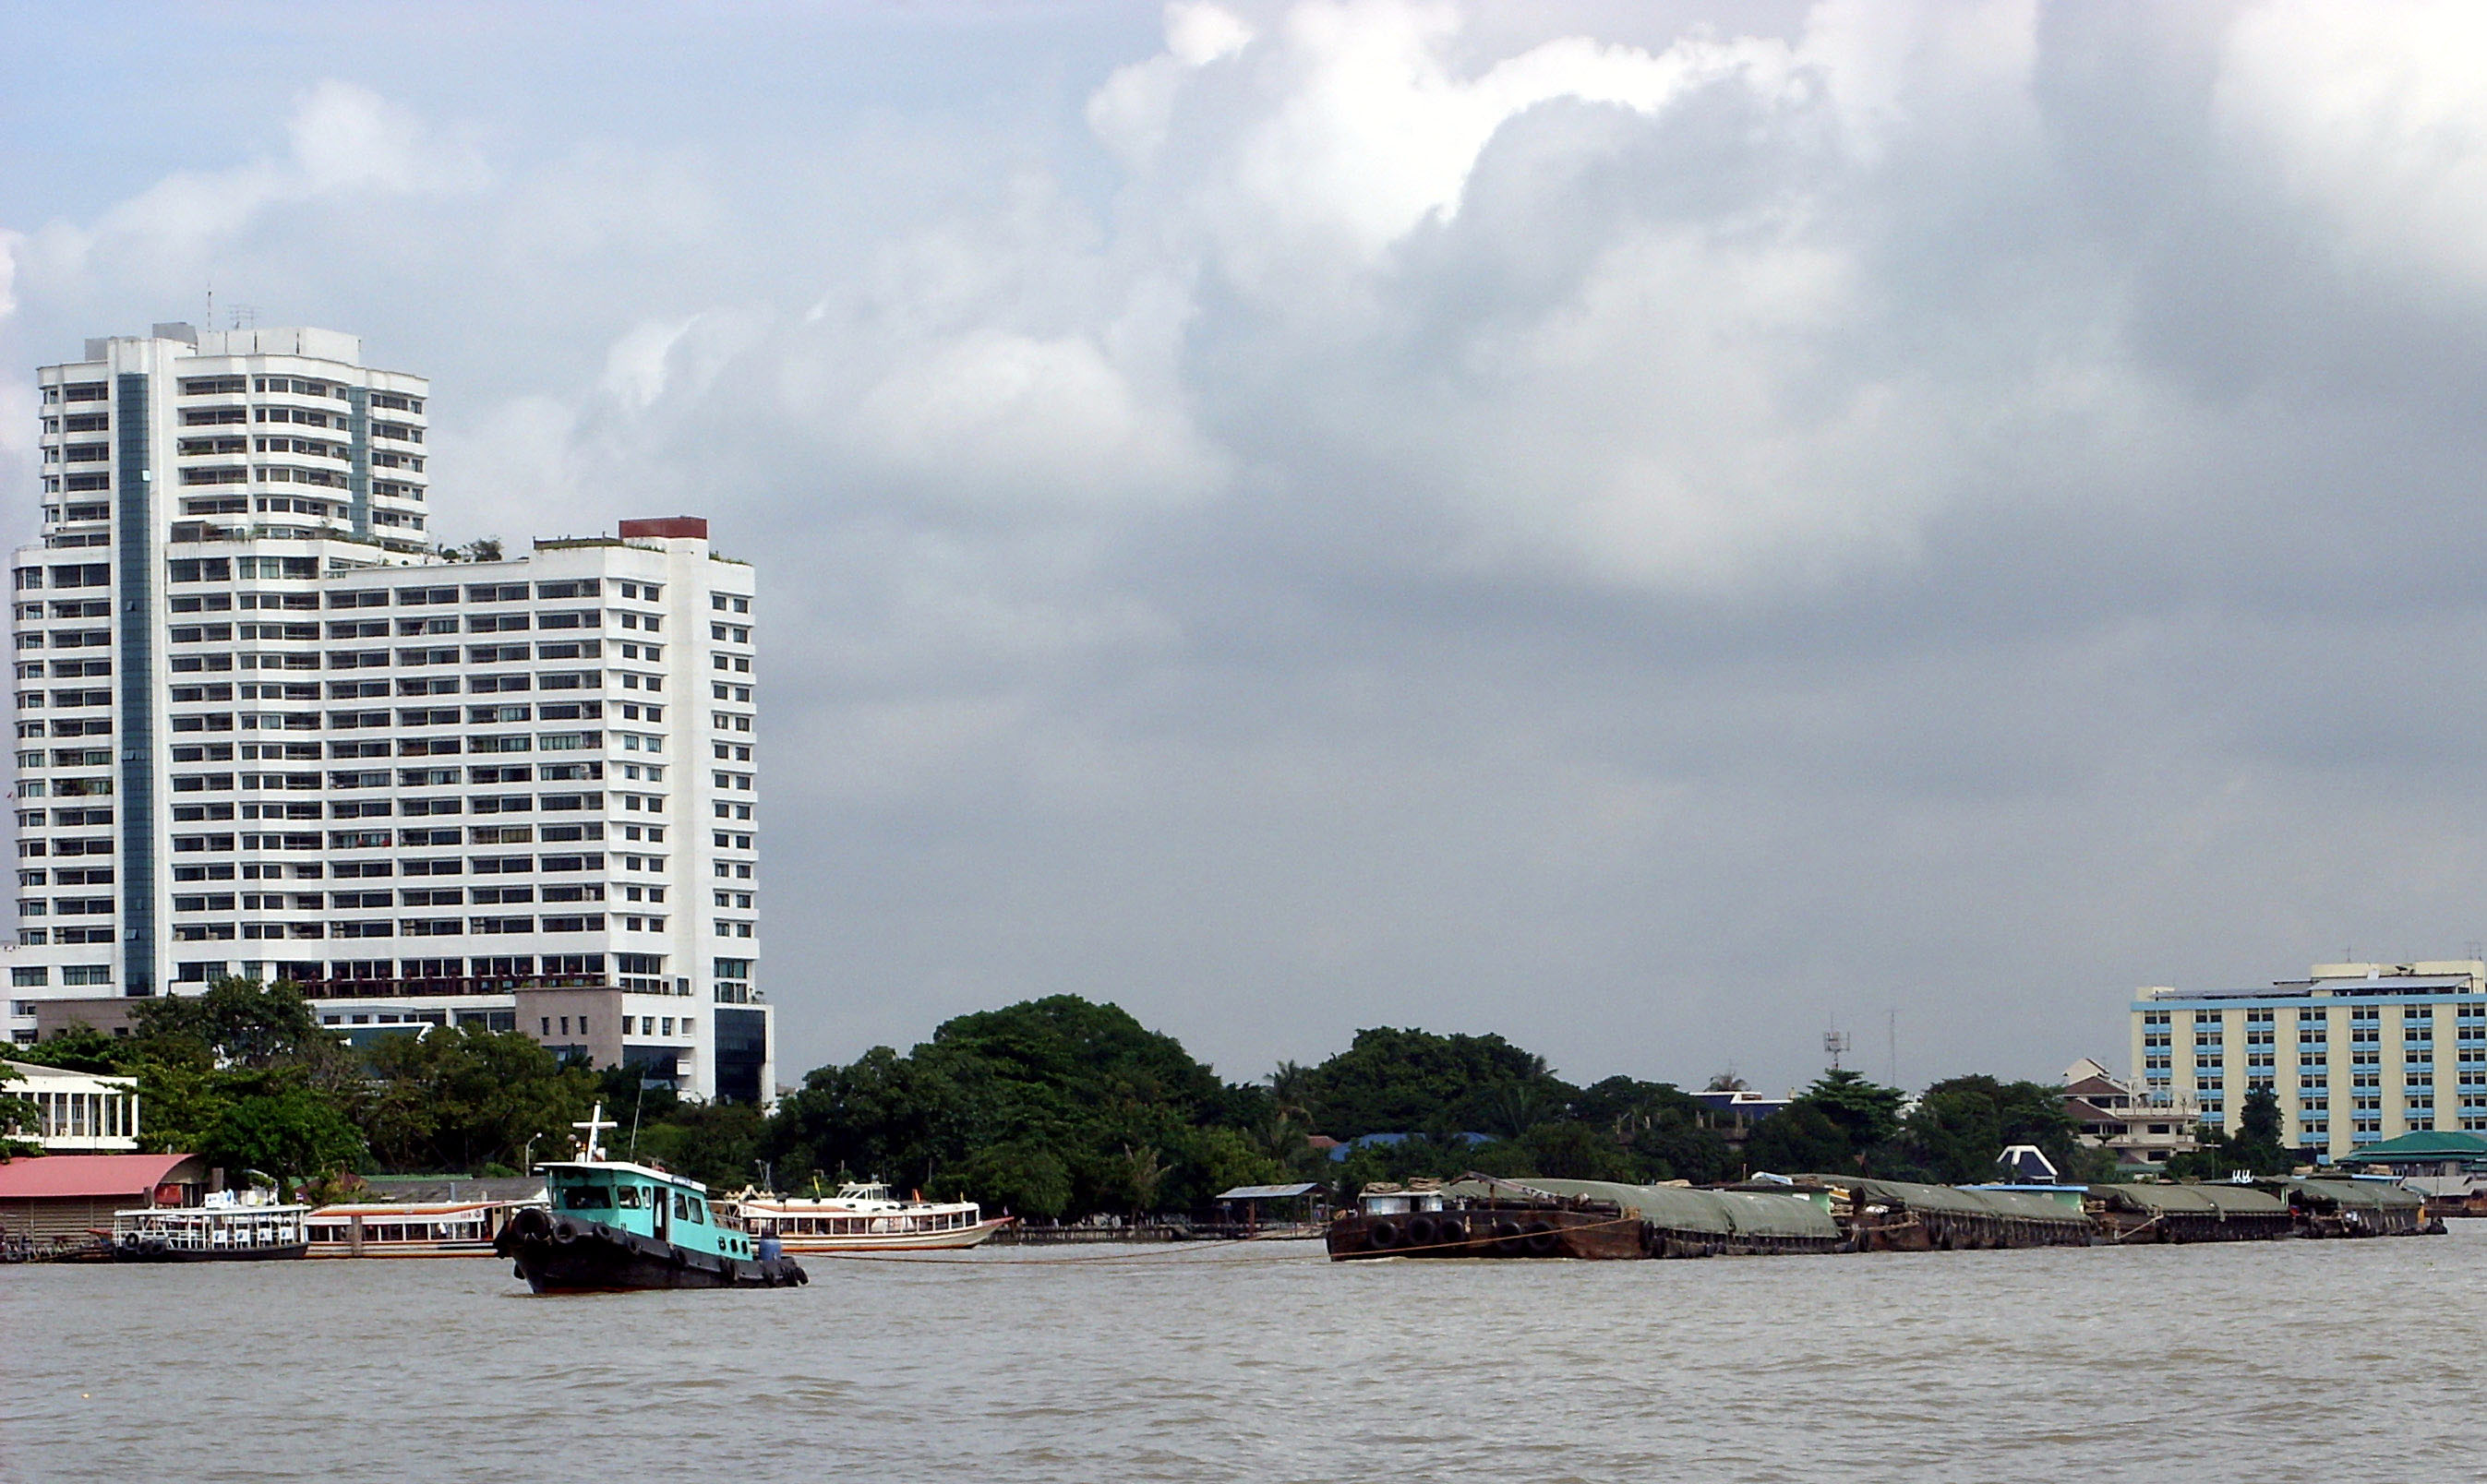 Tug and River barges, Bangkok, Chaophraya, River, Thai, HQ Photo